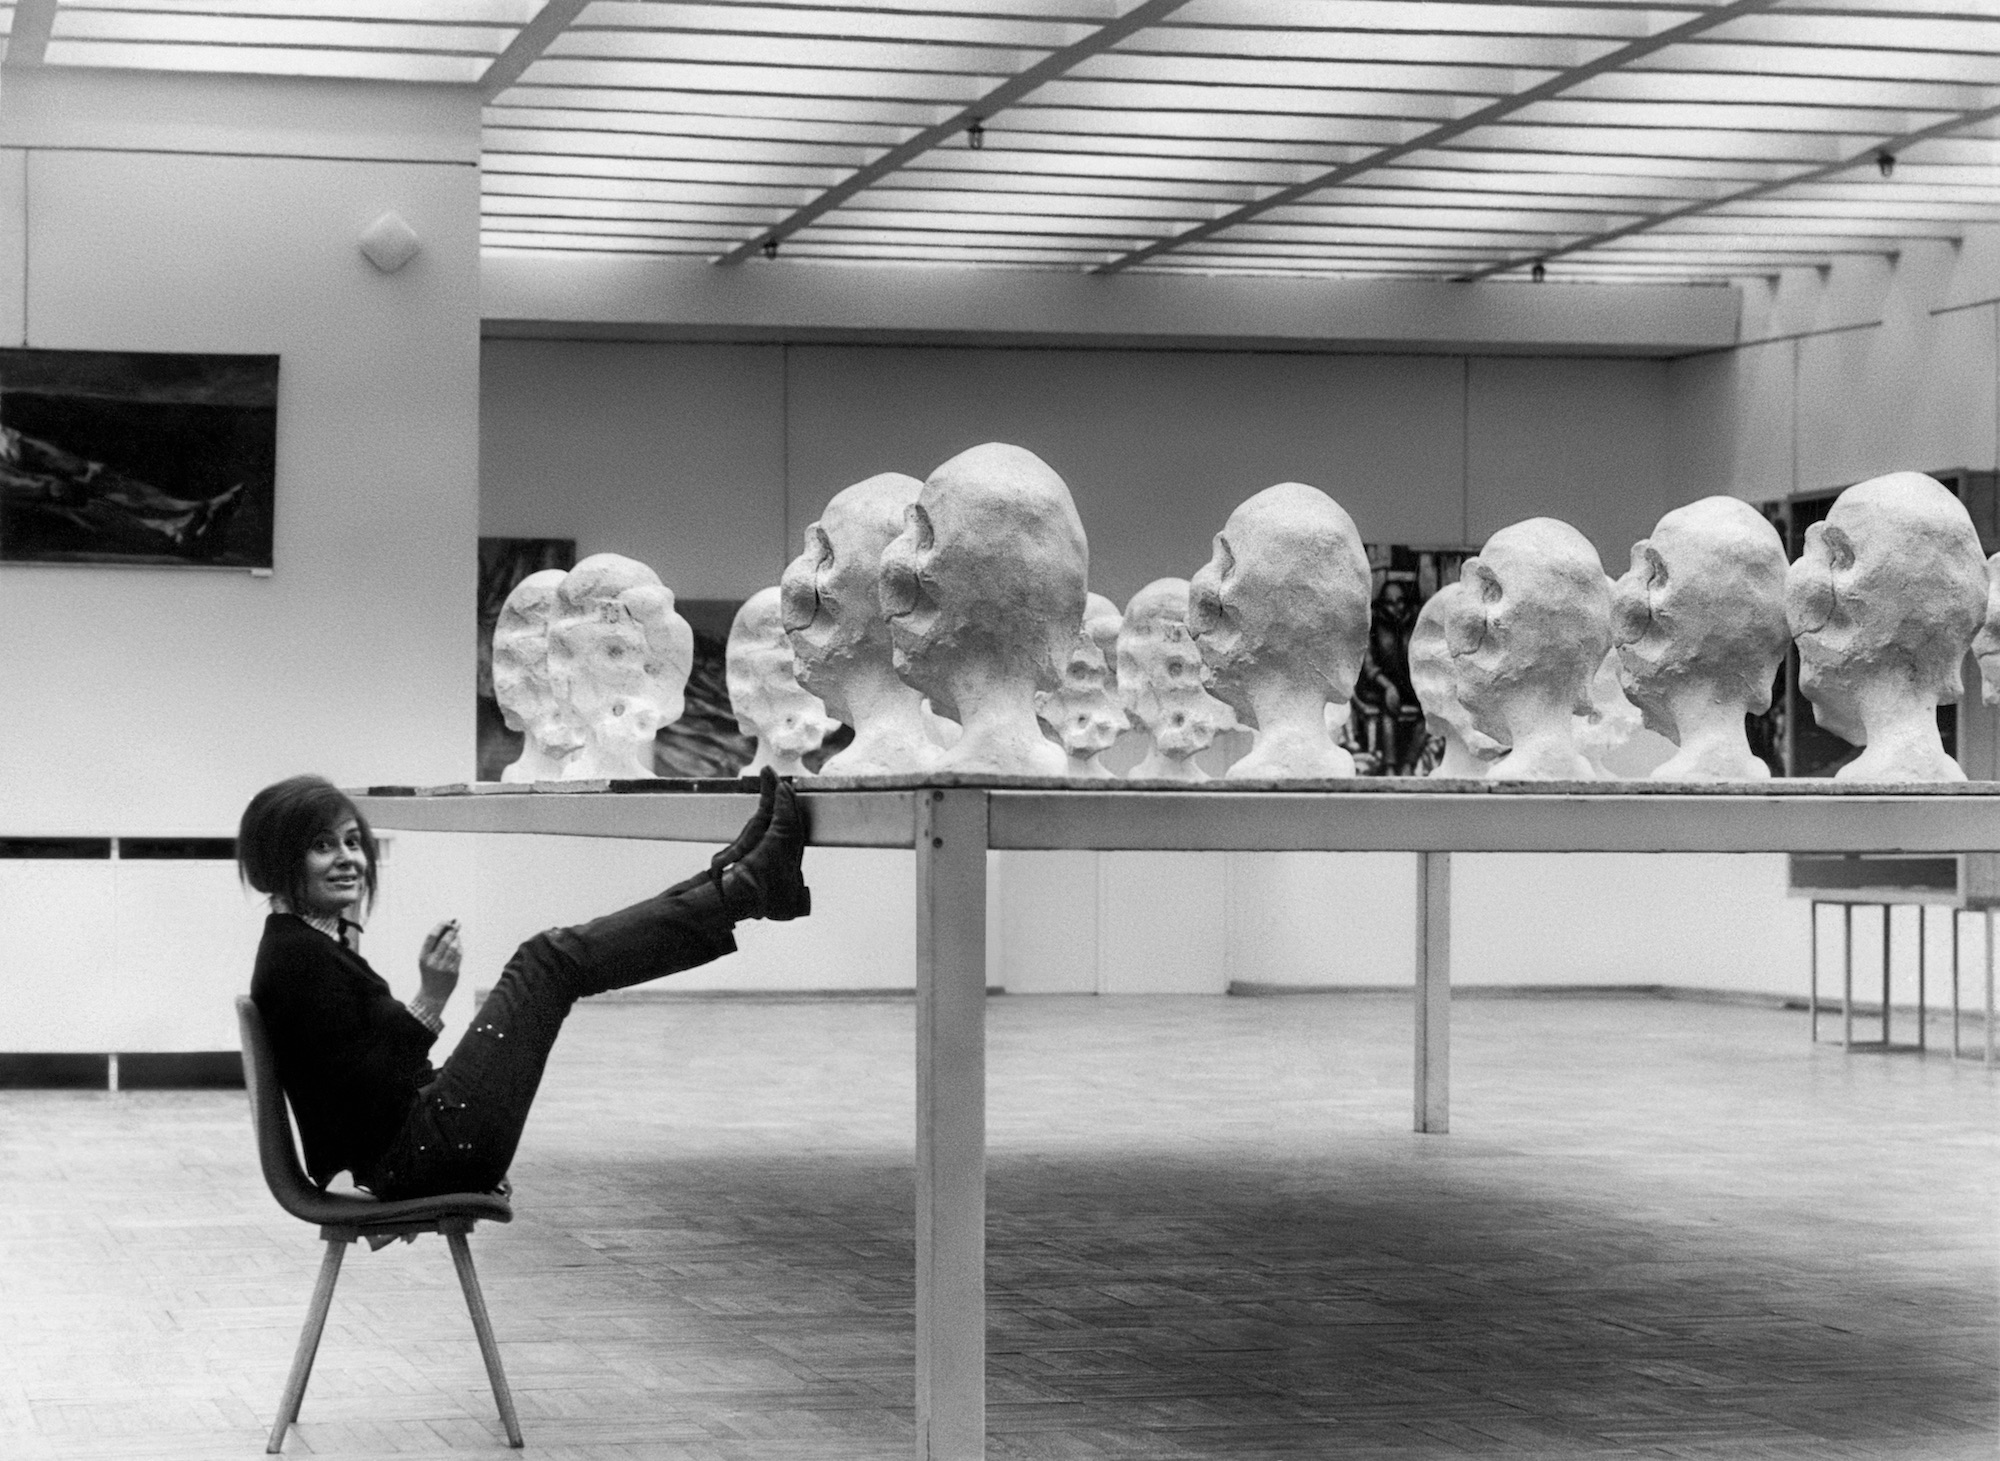 Wanda Czelkowska next to her installation The Table, 1971